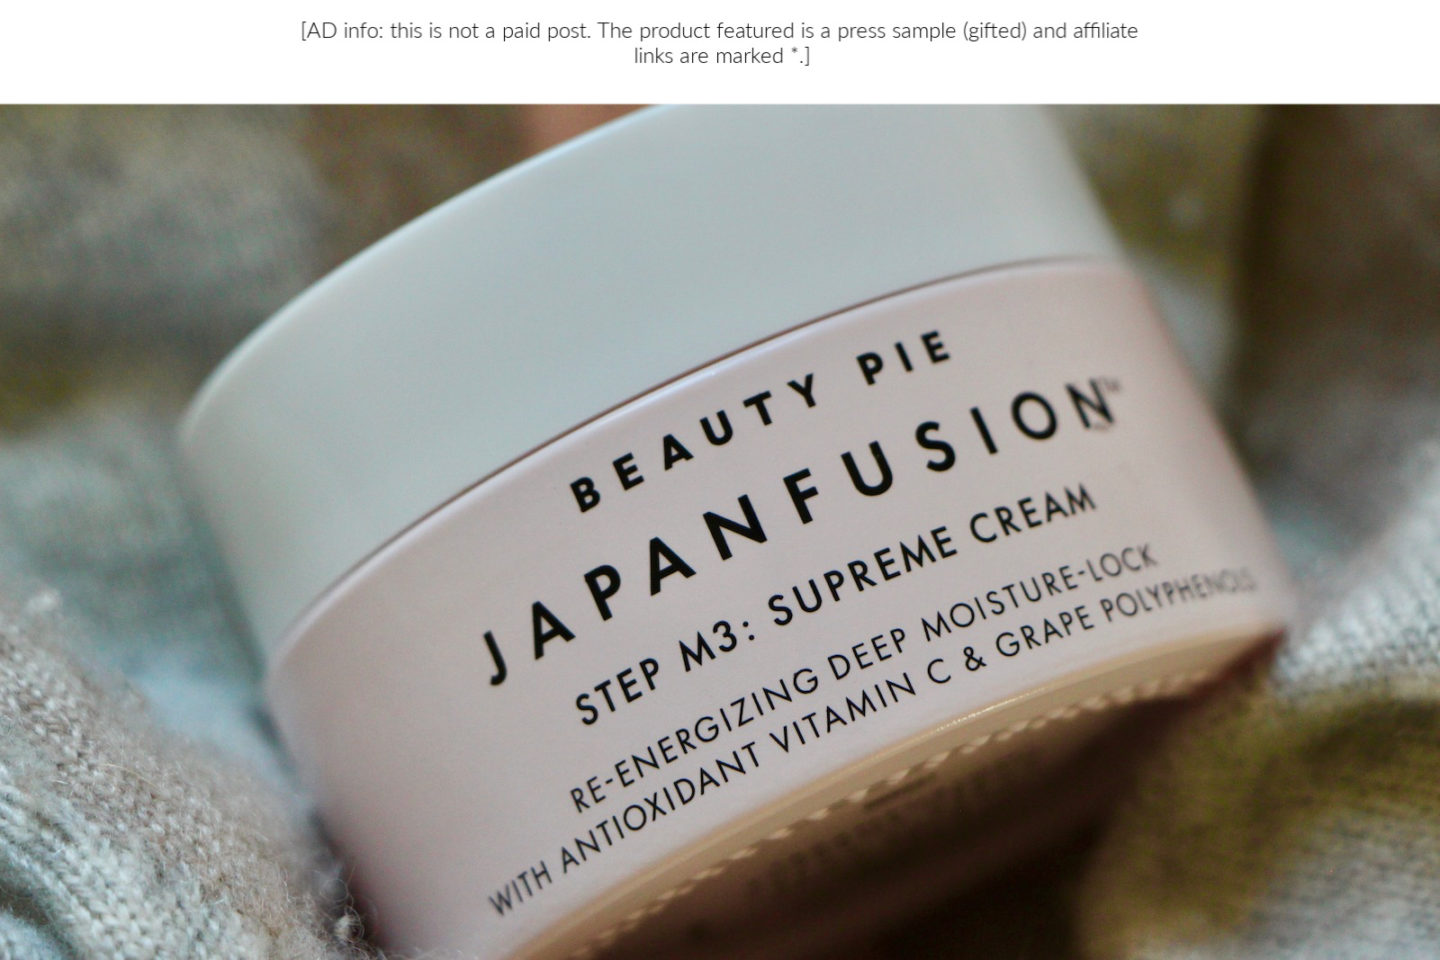 beauty pie japanfusion supreme cream